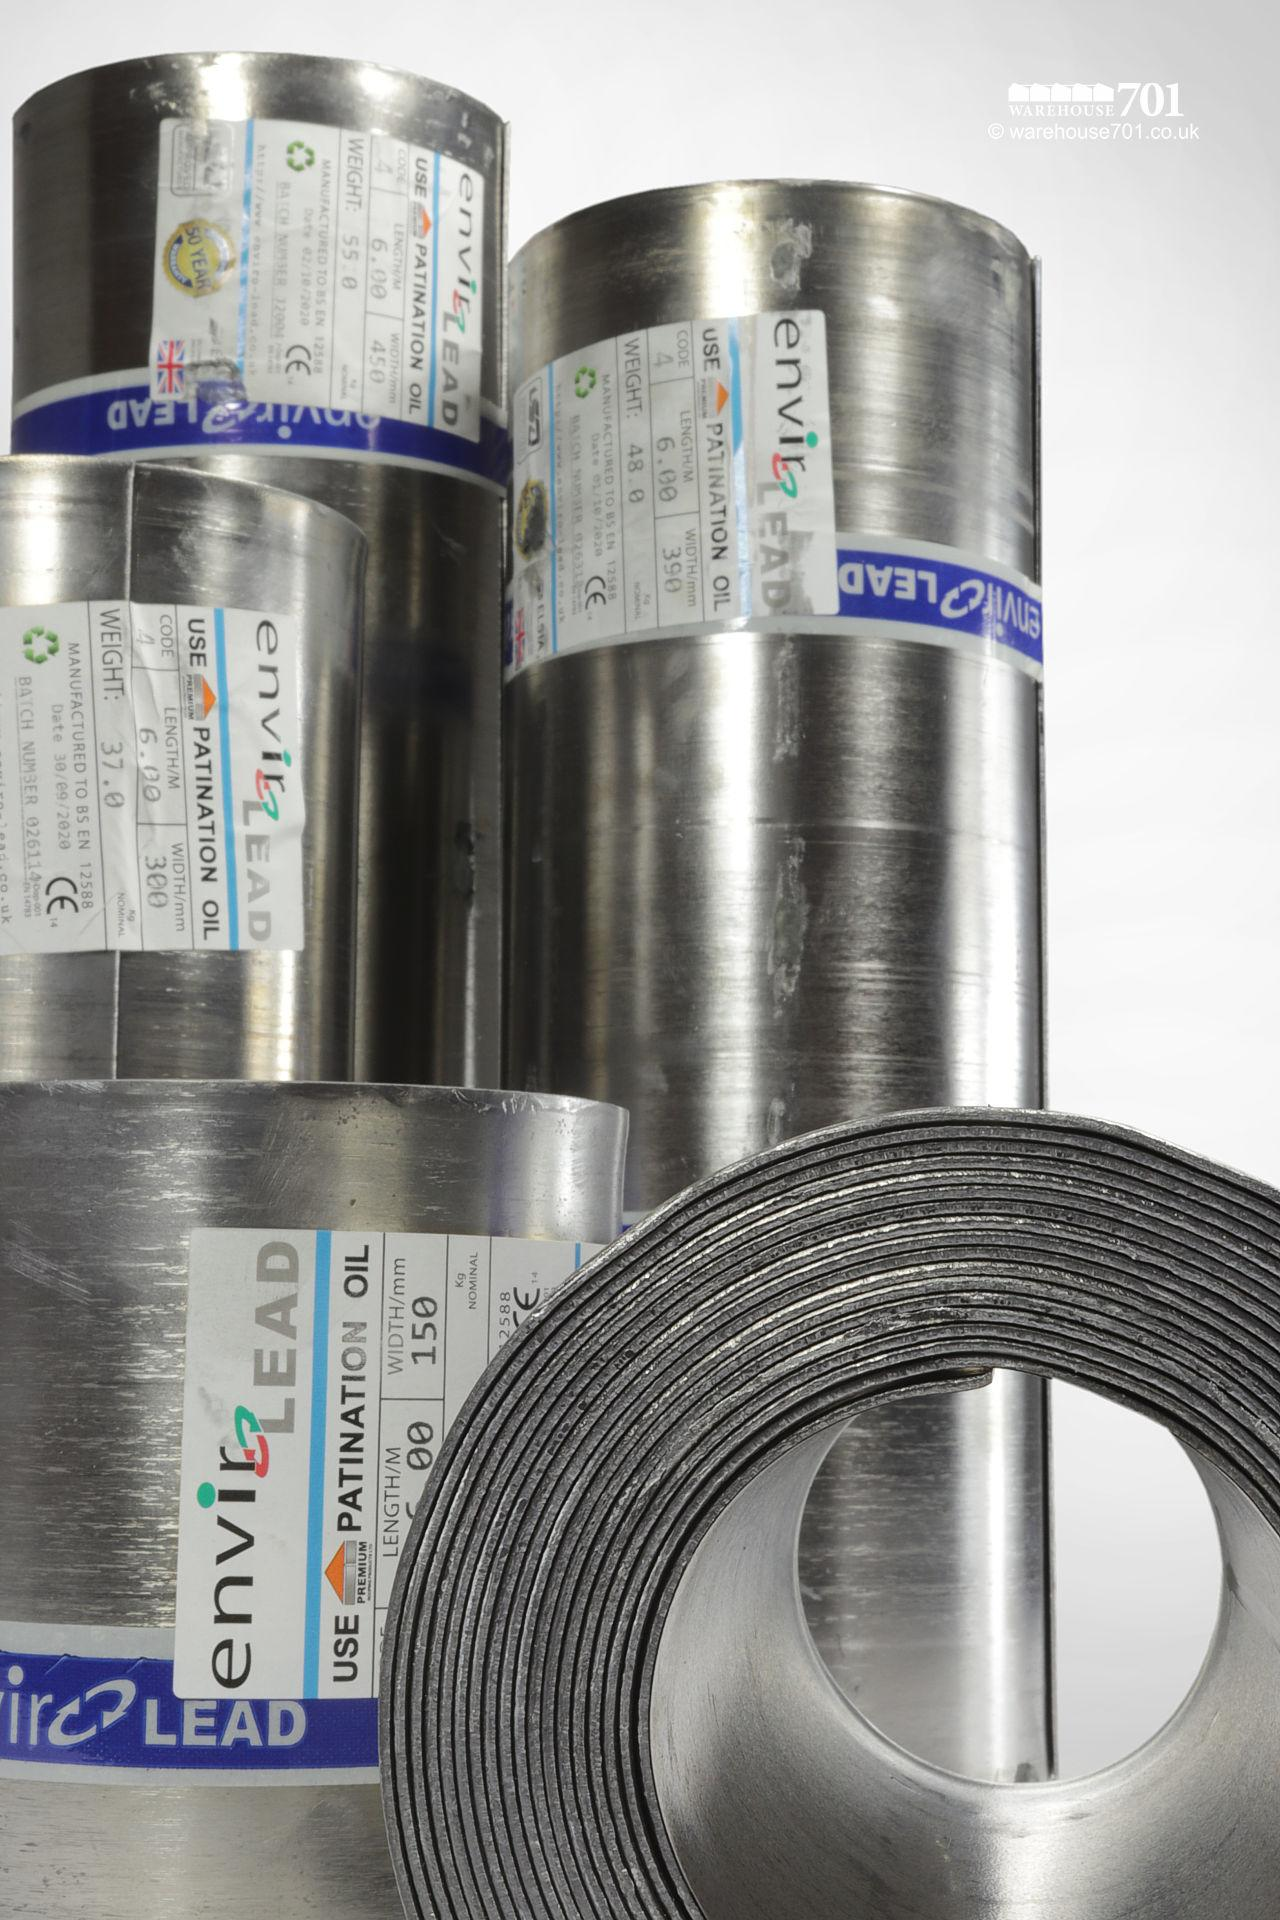 Code 4 Roofing Lead 6m Rolls #4